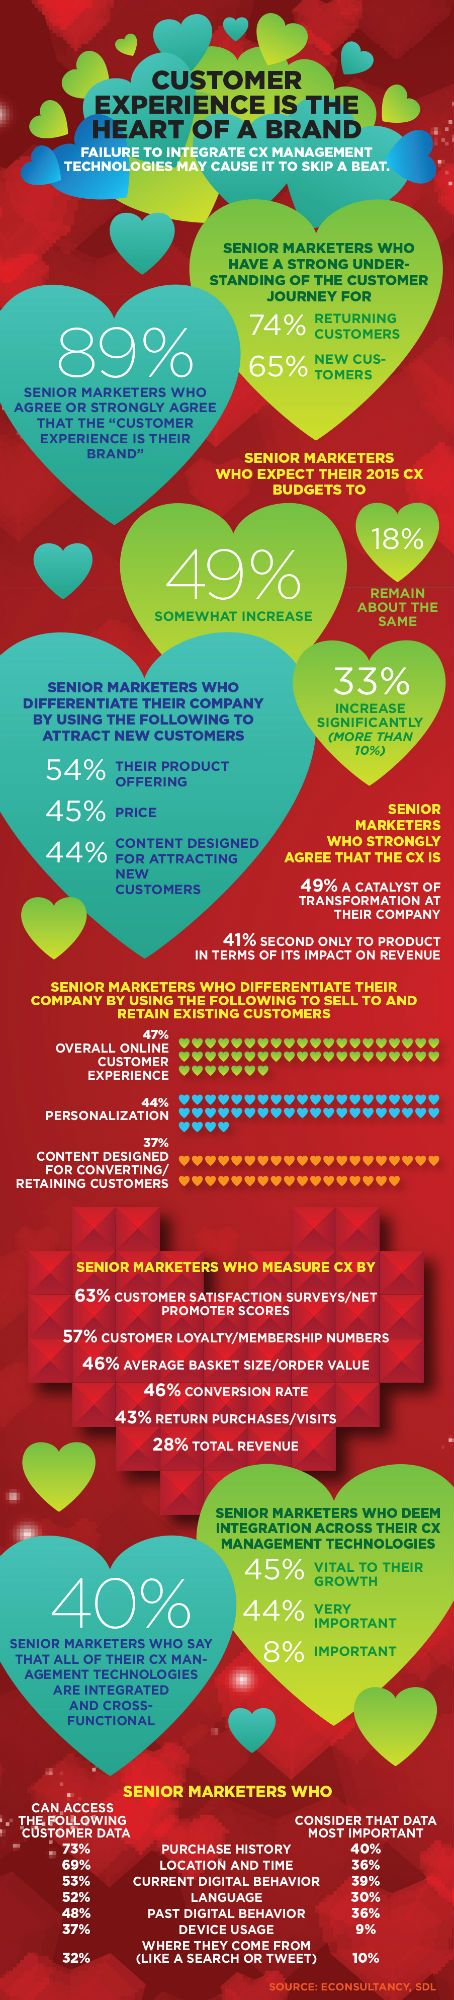 """89% of senior marketers for North American retail companies agree or strongly agree that the """"customer experience is their brand."""""""